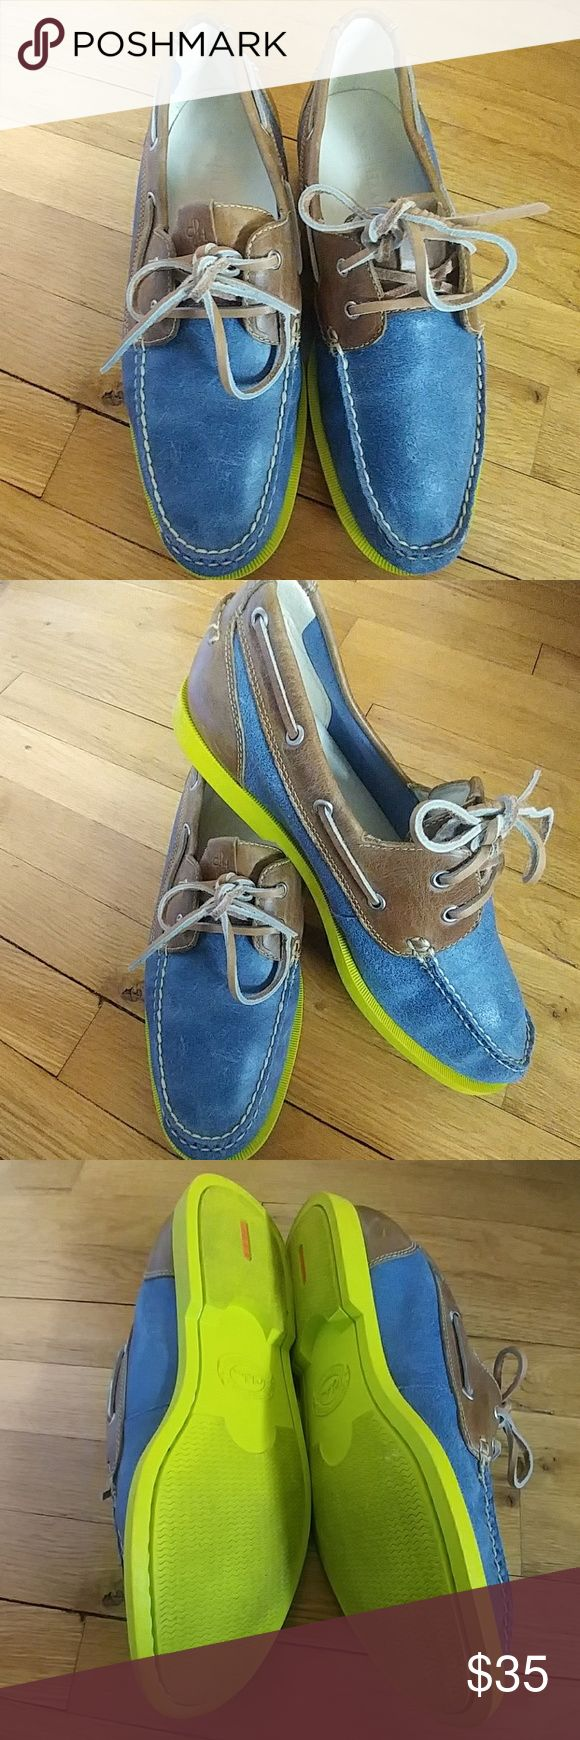 Men's Cole Haan Leather Boat Shoes Men's Cole Haan Leather Boat Shoes Only worn once! Gorgeous denim blue & brown leather upper; almost like a neon yellow sole. Cole Haan Shoes Boat Shoes